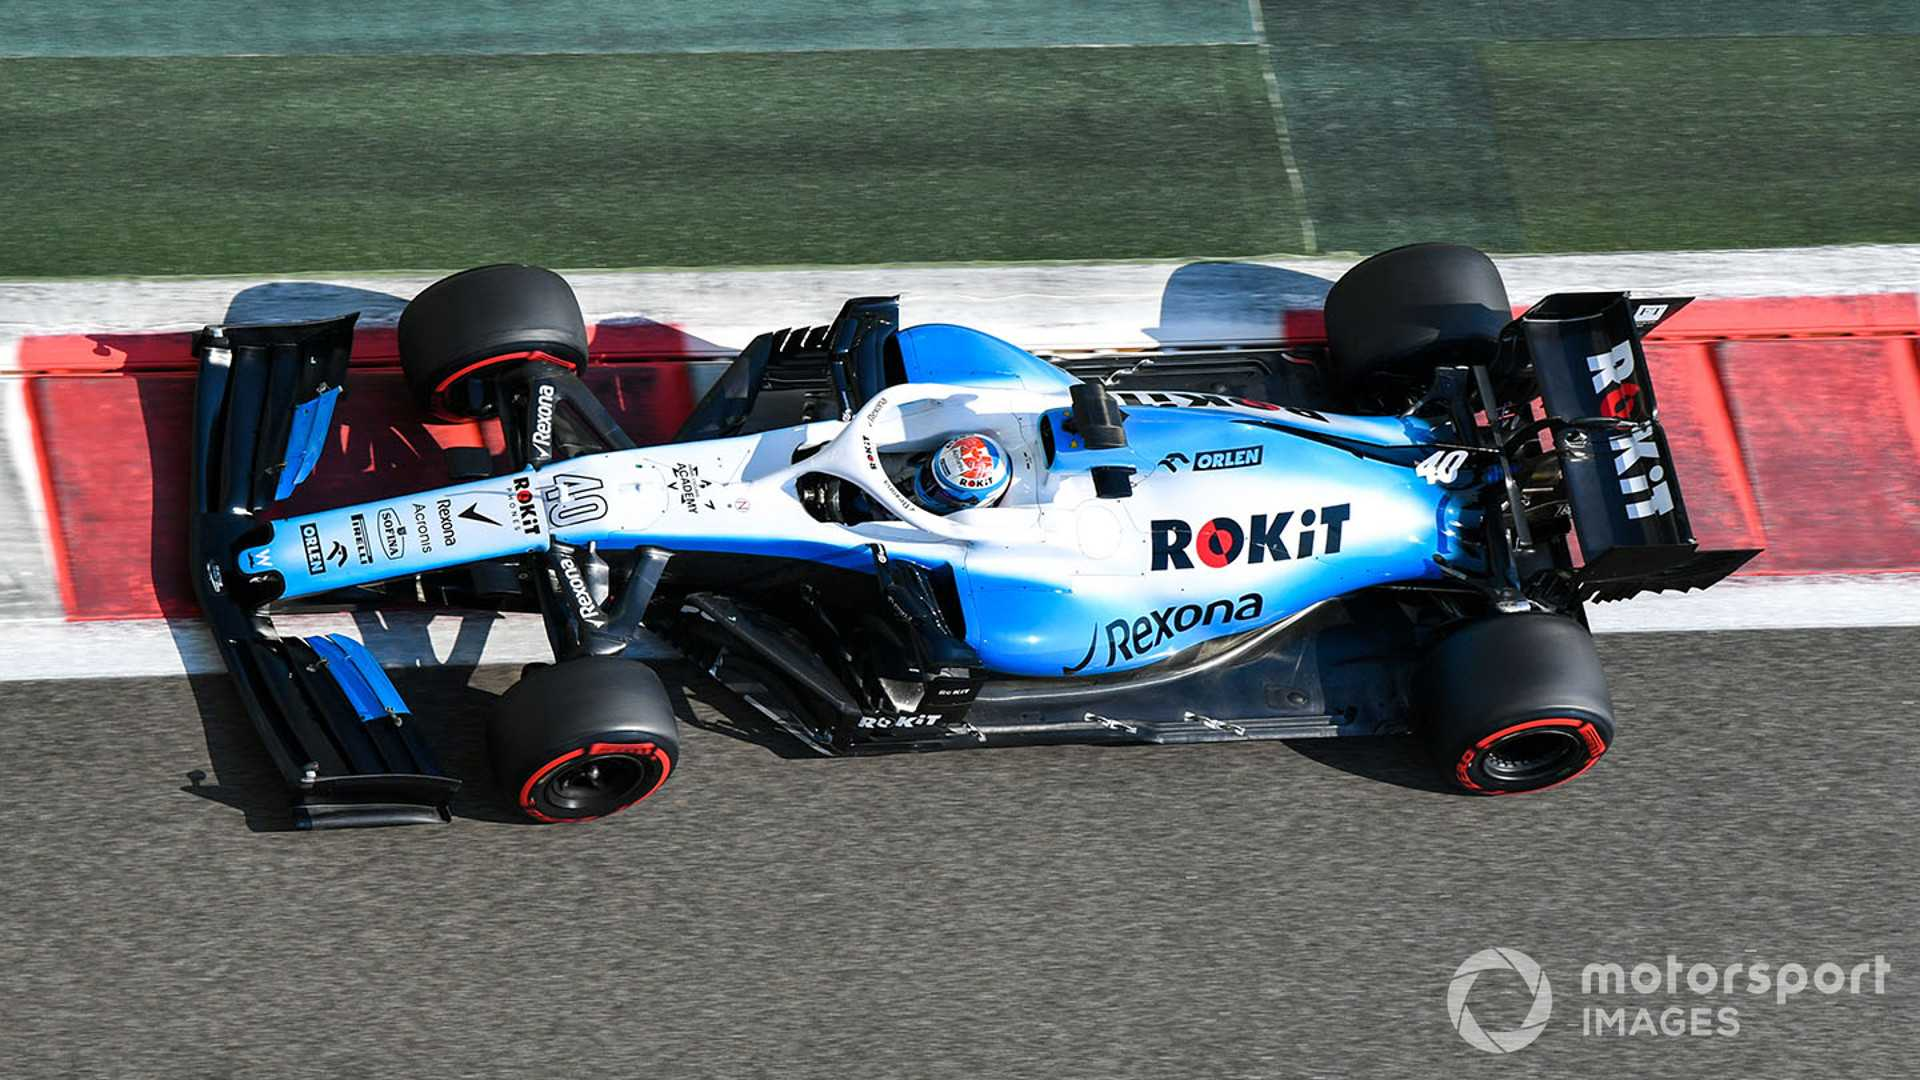 Williams adds Red Bull, Renault engineers in key tech roles